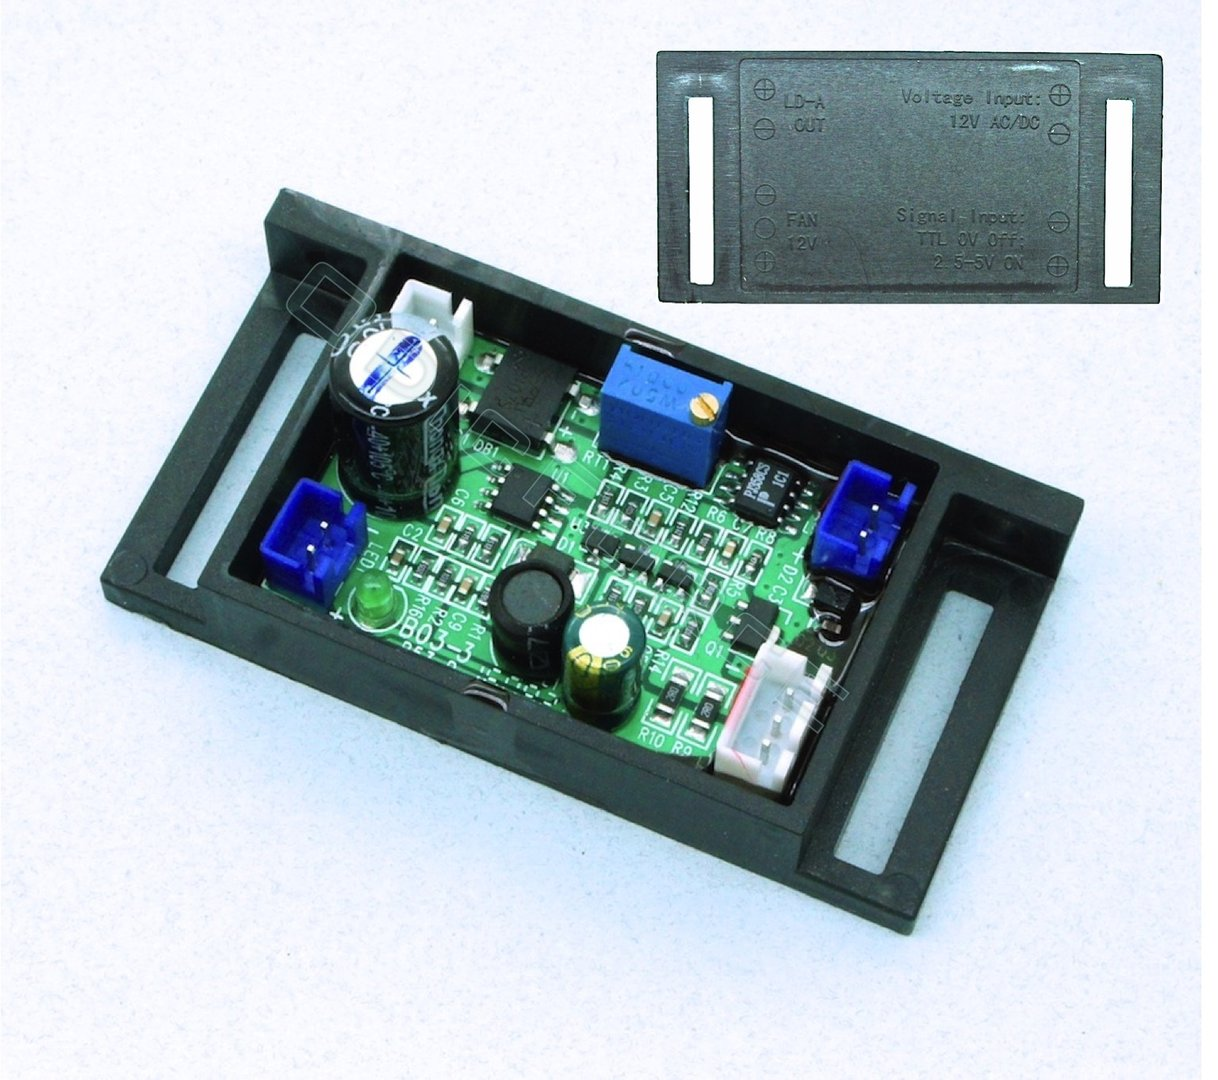 0 - 600mA 12V Driver for 405nm and 520nm Green Laser Diodes (6.6V output), 12V with Optional TTL